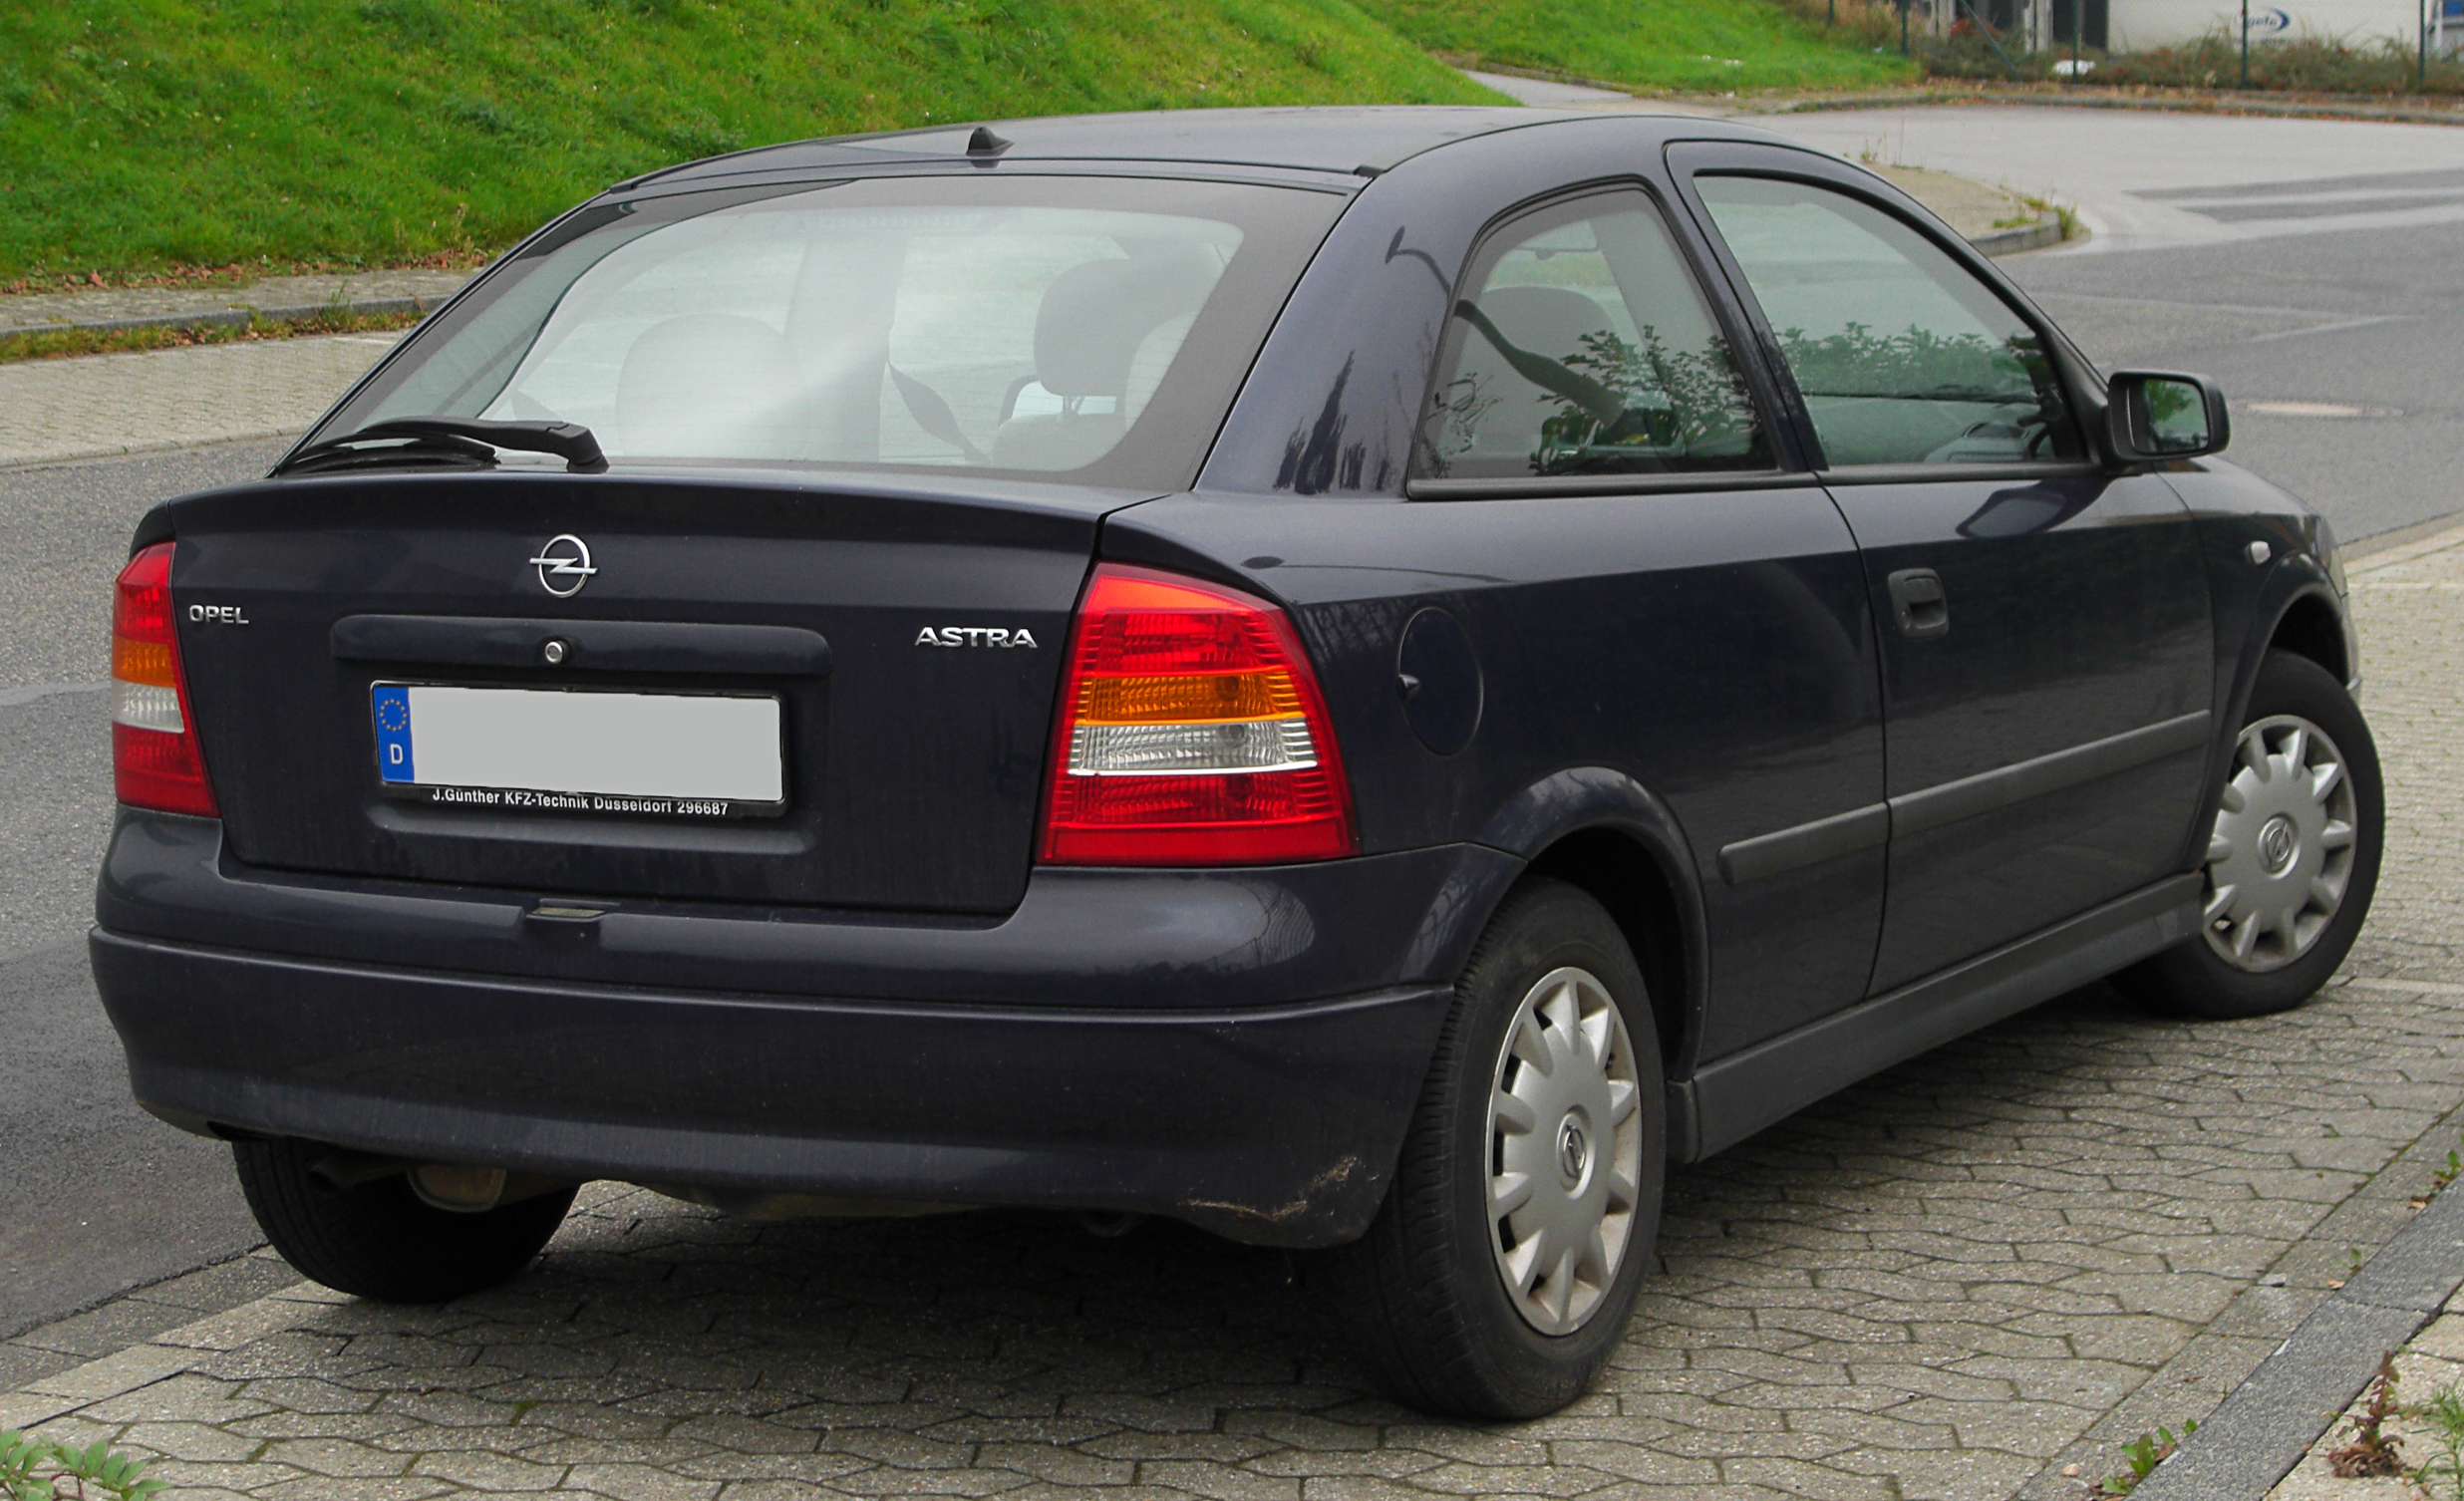 1999 opel astra g cc pictures information and specs auto. Black Bedroom Furniture Sets. Home Design Ideas